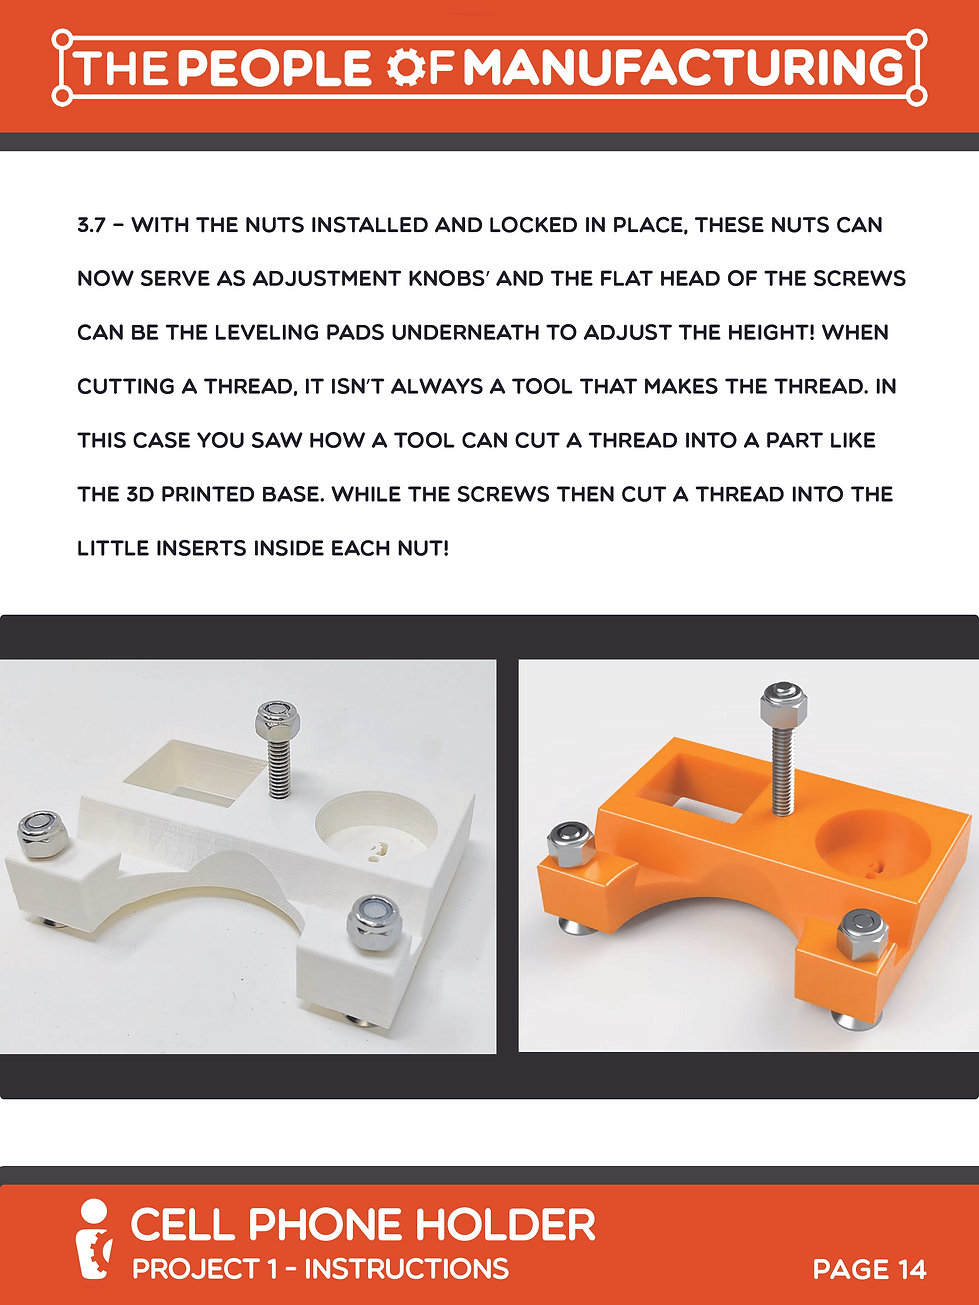 Cell Phone Page 14 - 3.0 LOCK NUT INSTAL